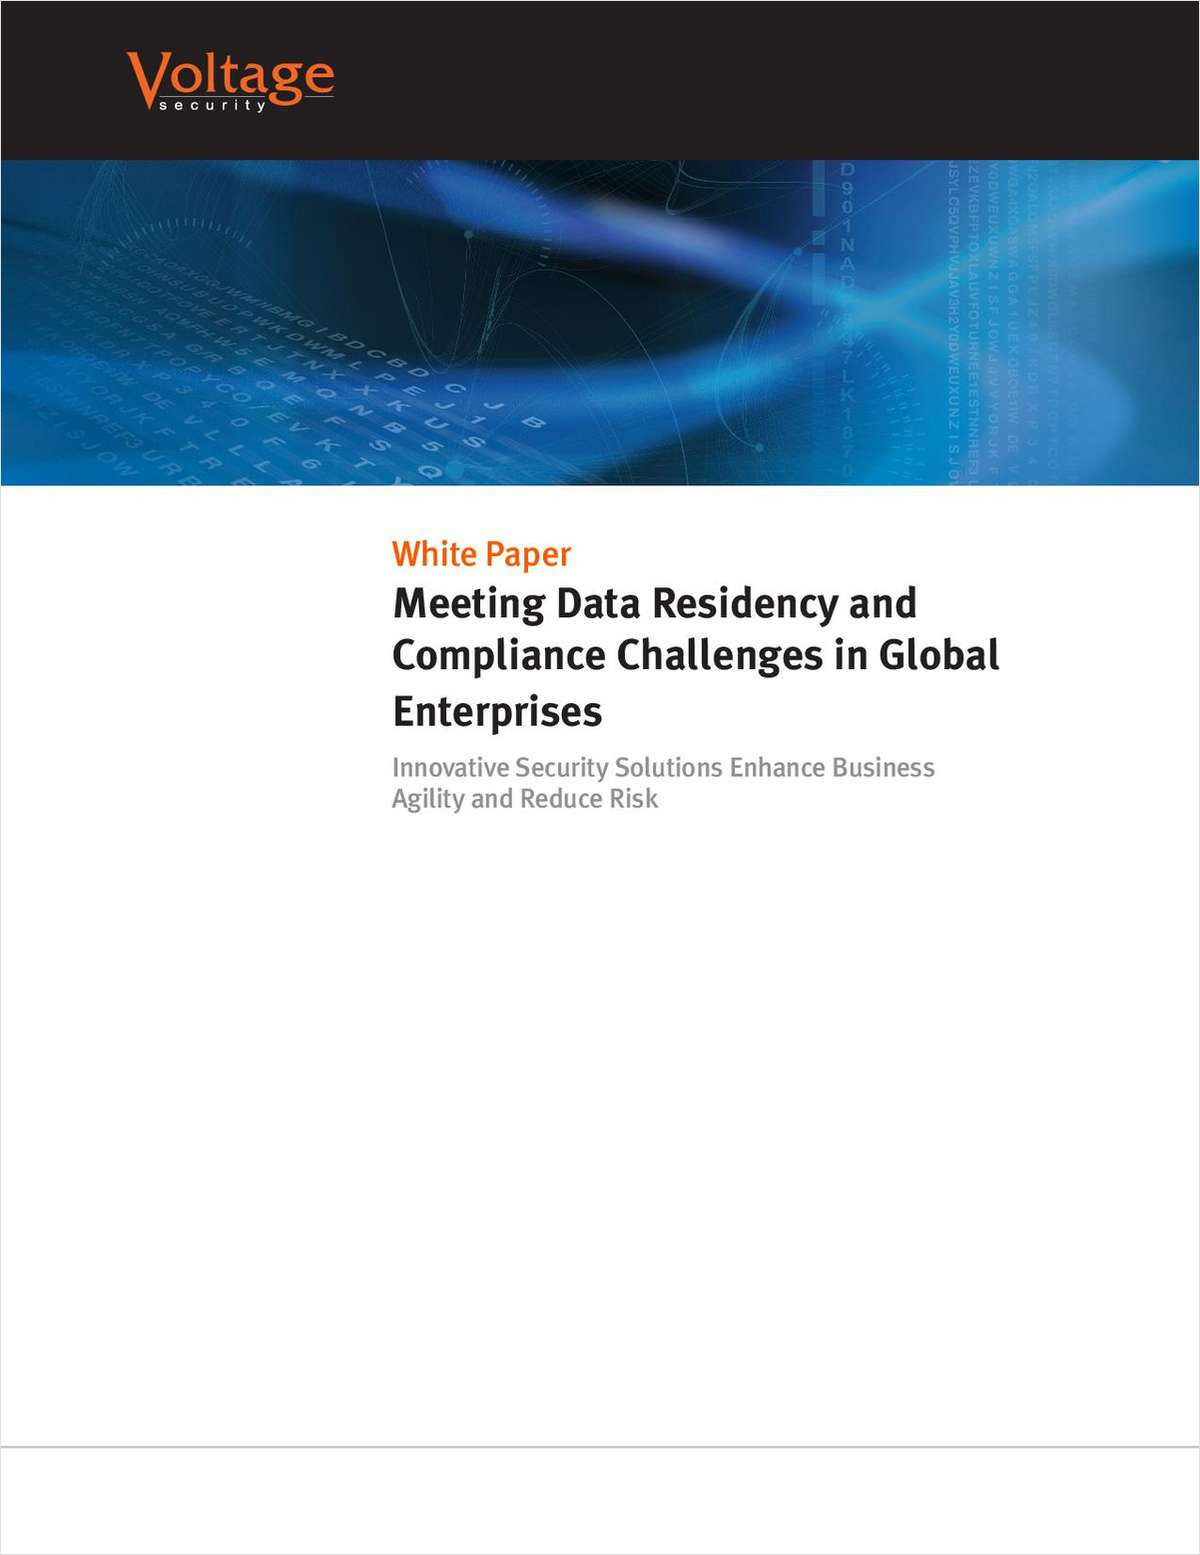 Meeting Data Residency and Compliance Challenges in Global Enterprises